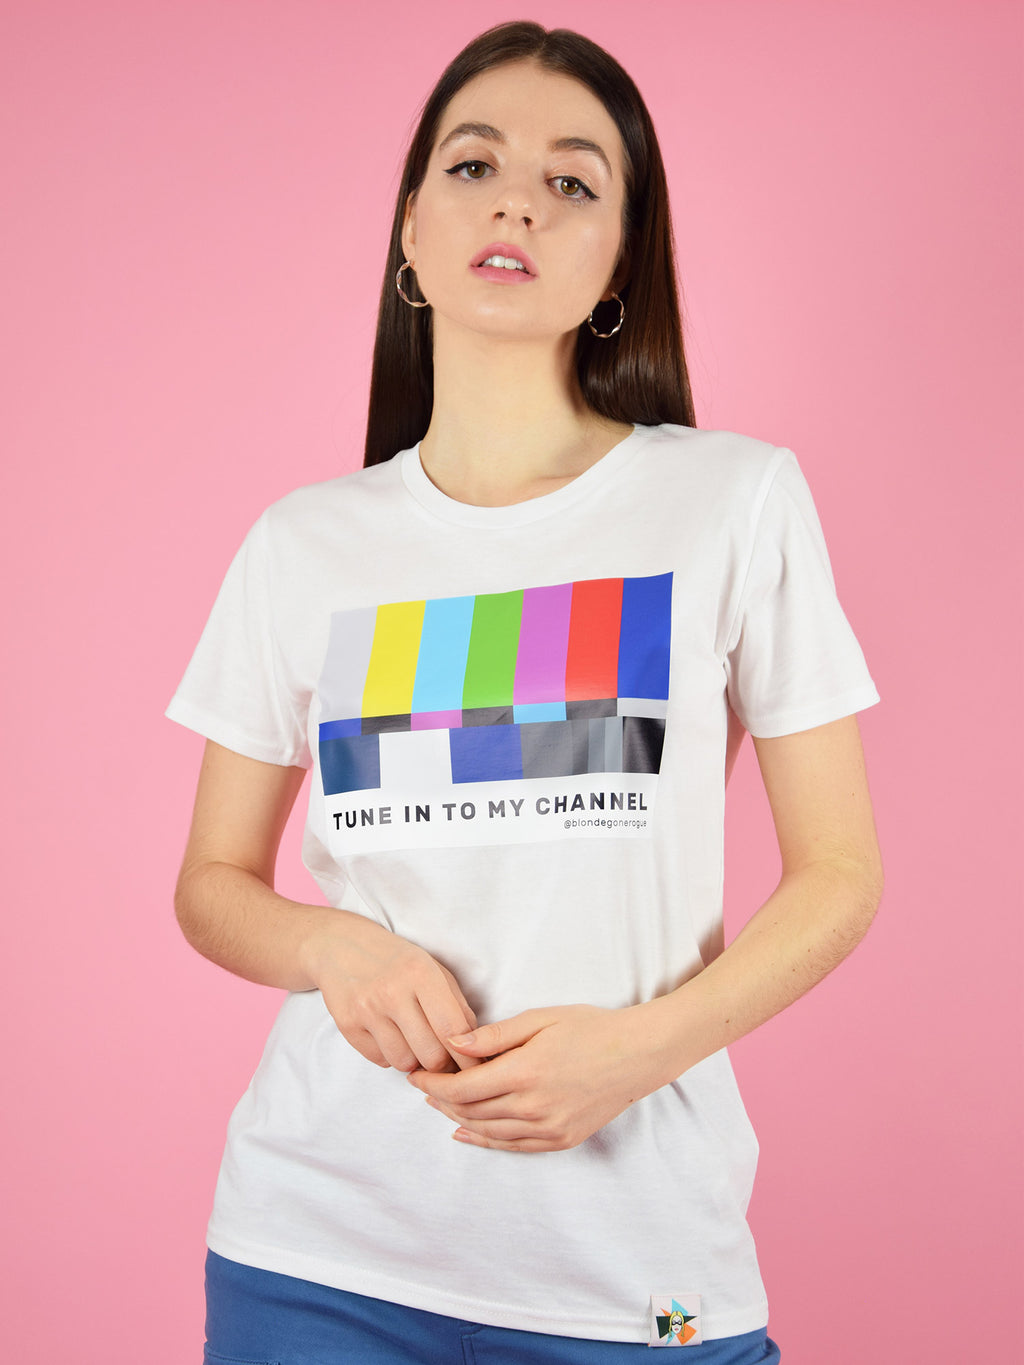 The tune in organic cotton tee by blonde gone rogue comes in white and freatures a cool, colourful, retro print on the chest and a flirty message.